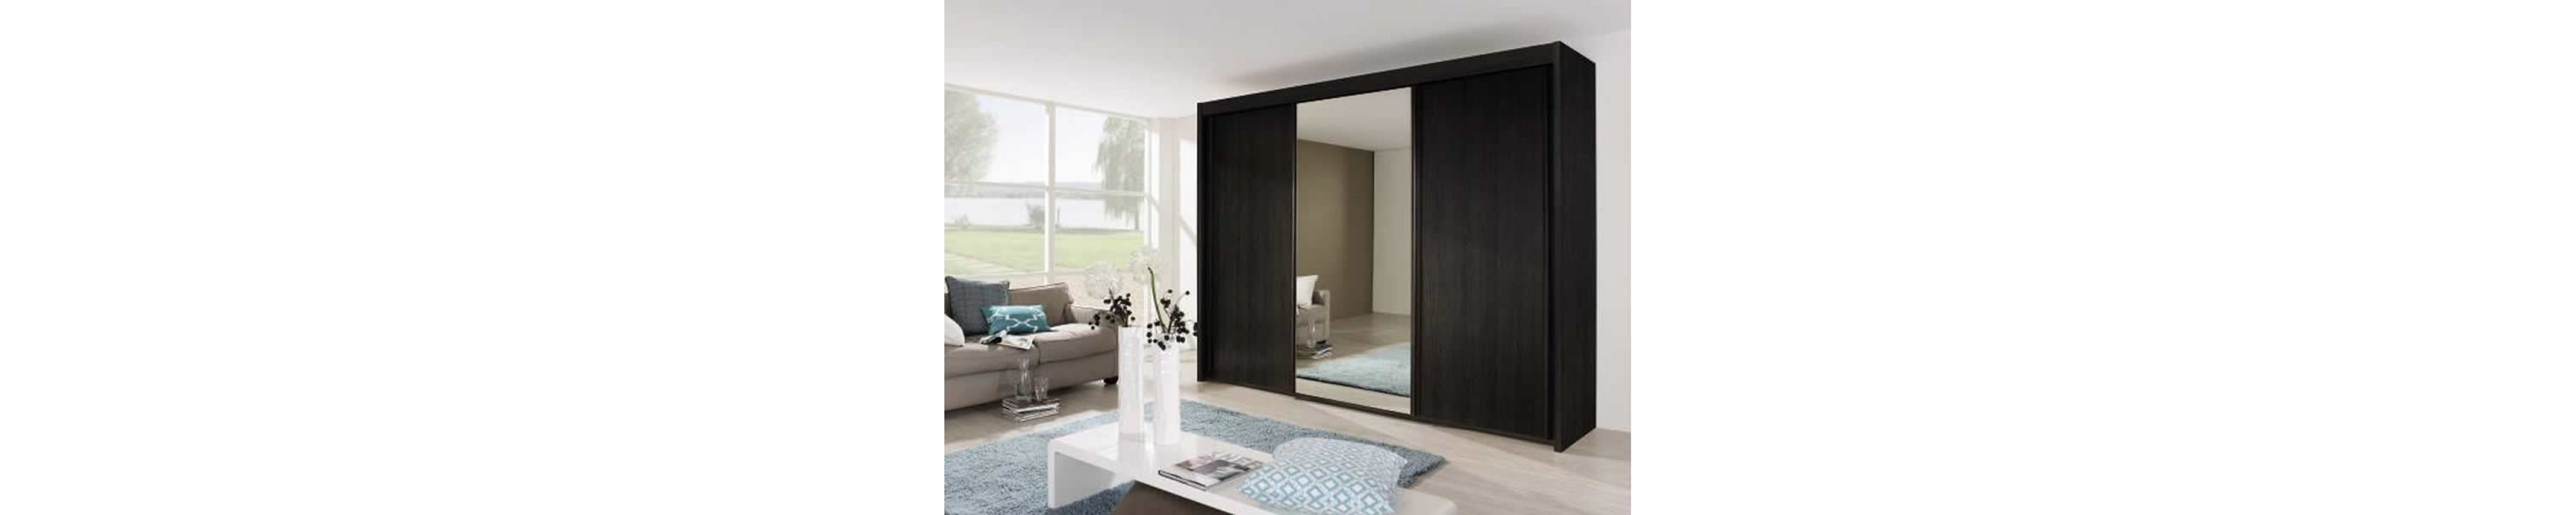 Imperial Wardrobes - Front Wooden and Mirror